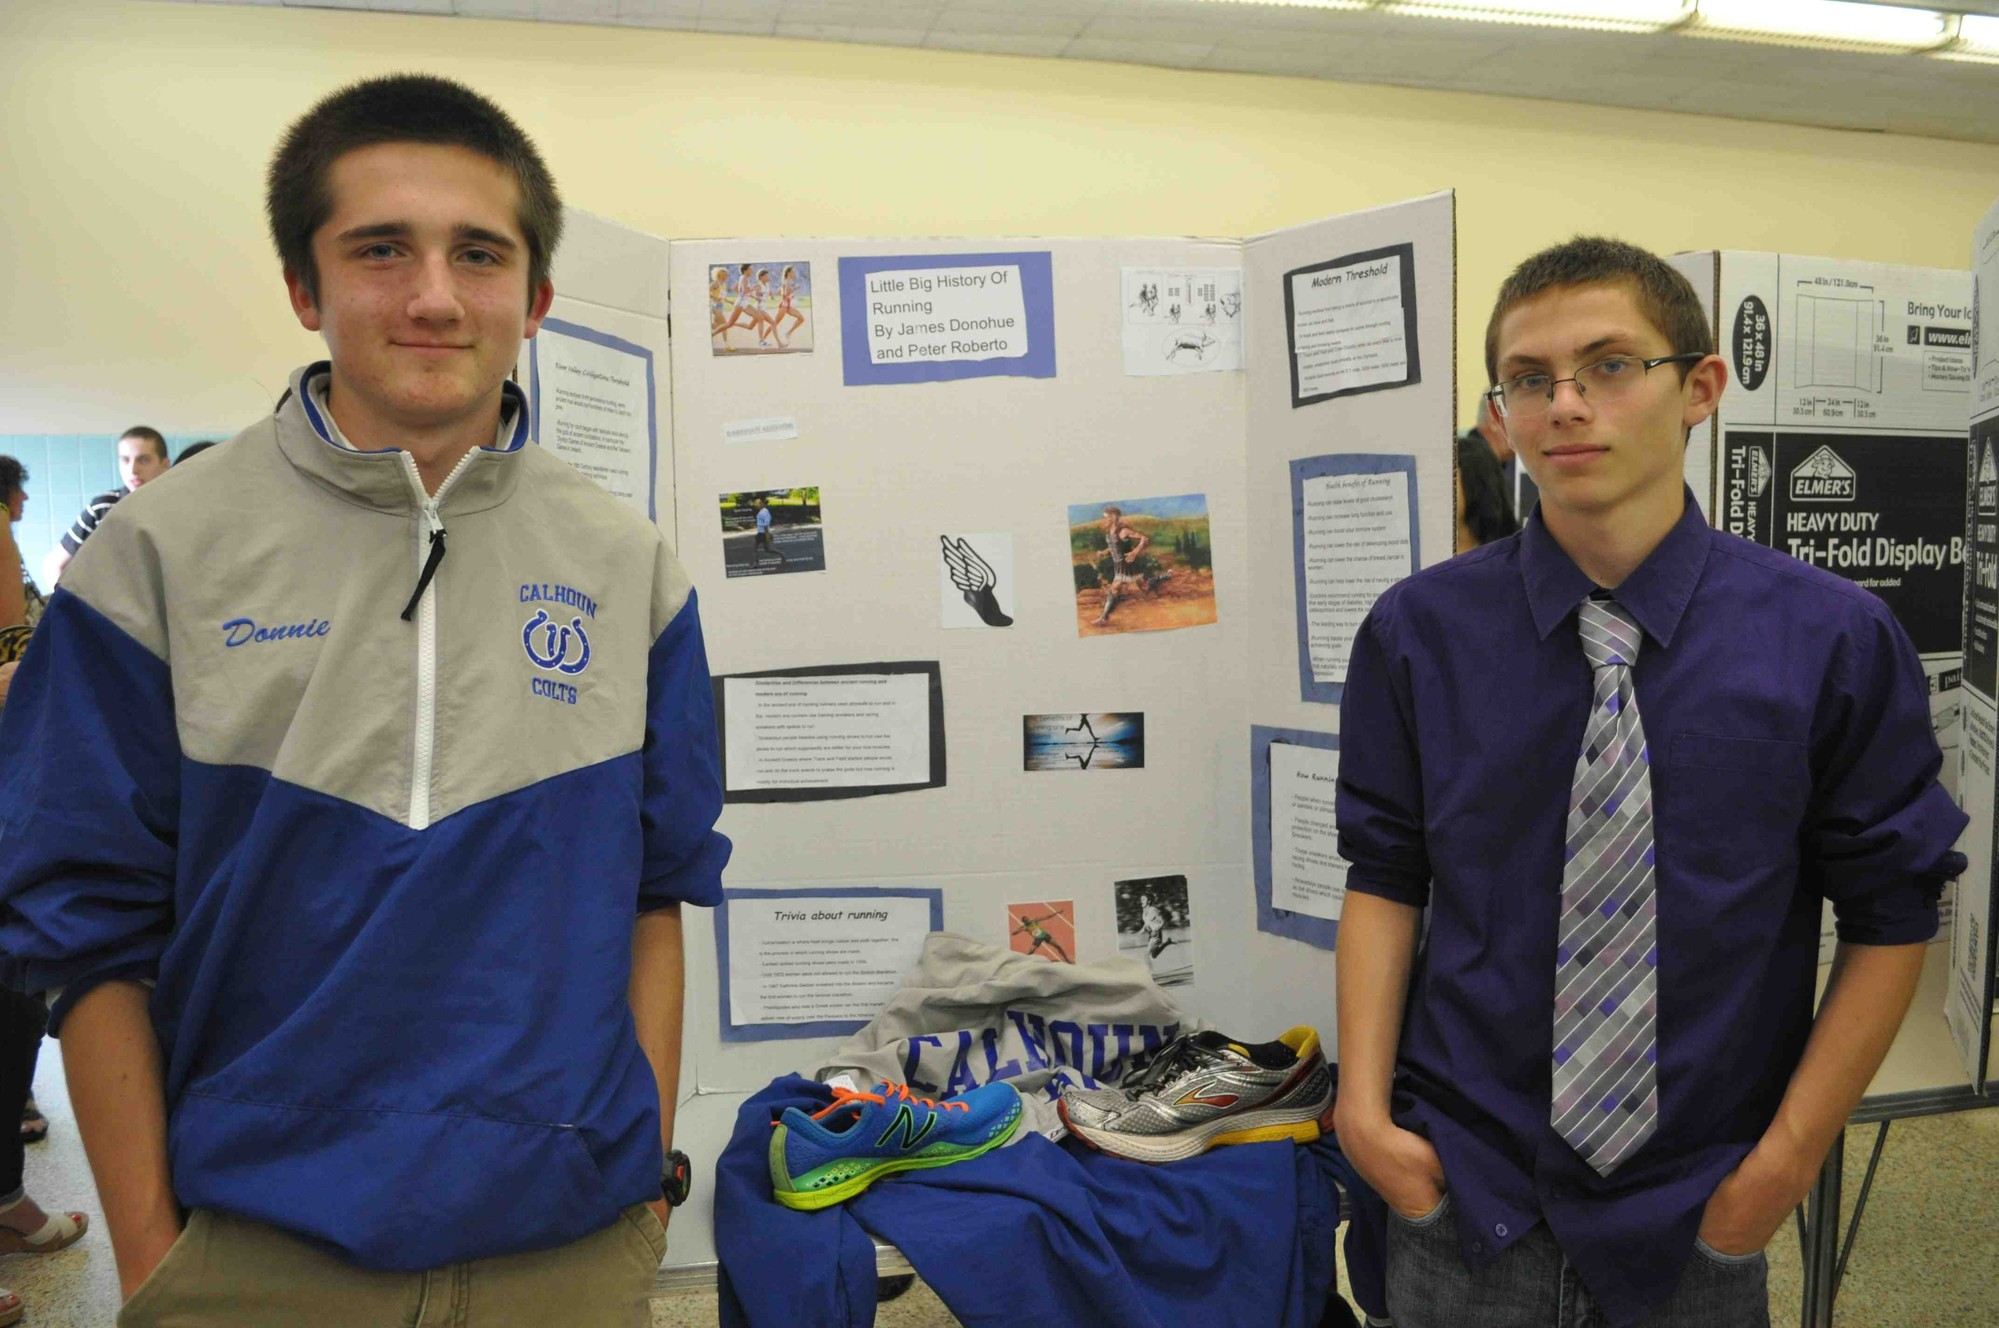 Calhoun ninth-graders James Donohue and Peter Roberto displayed their project at the Little Big History Fair